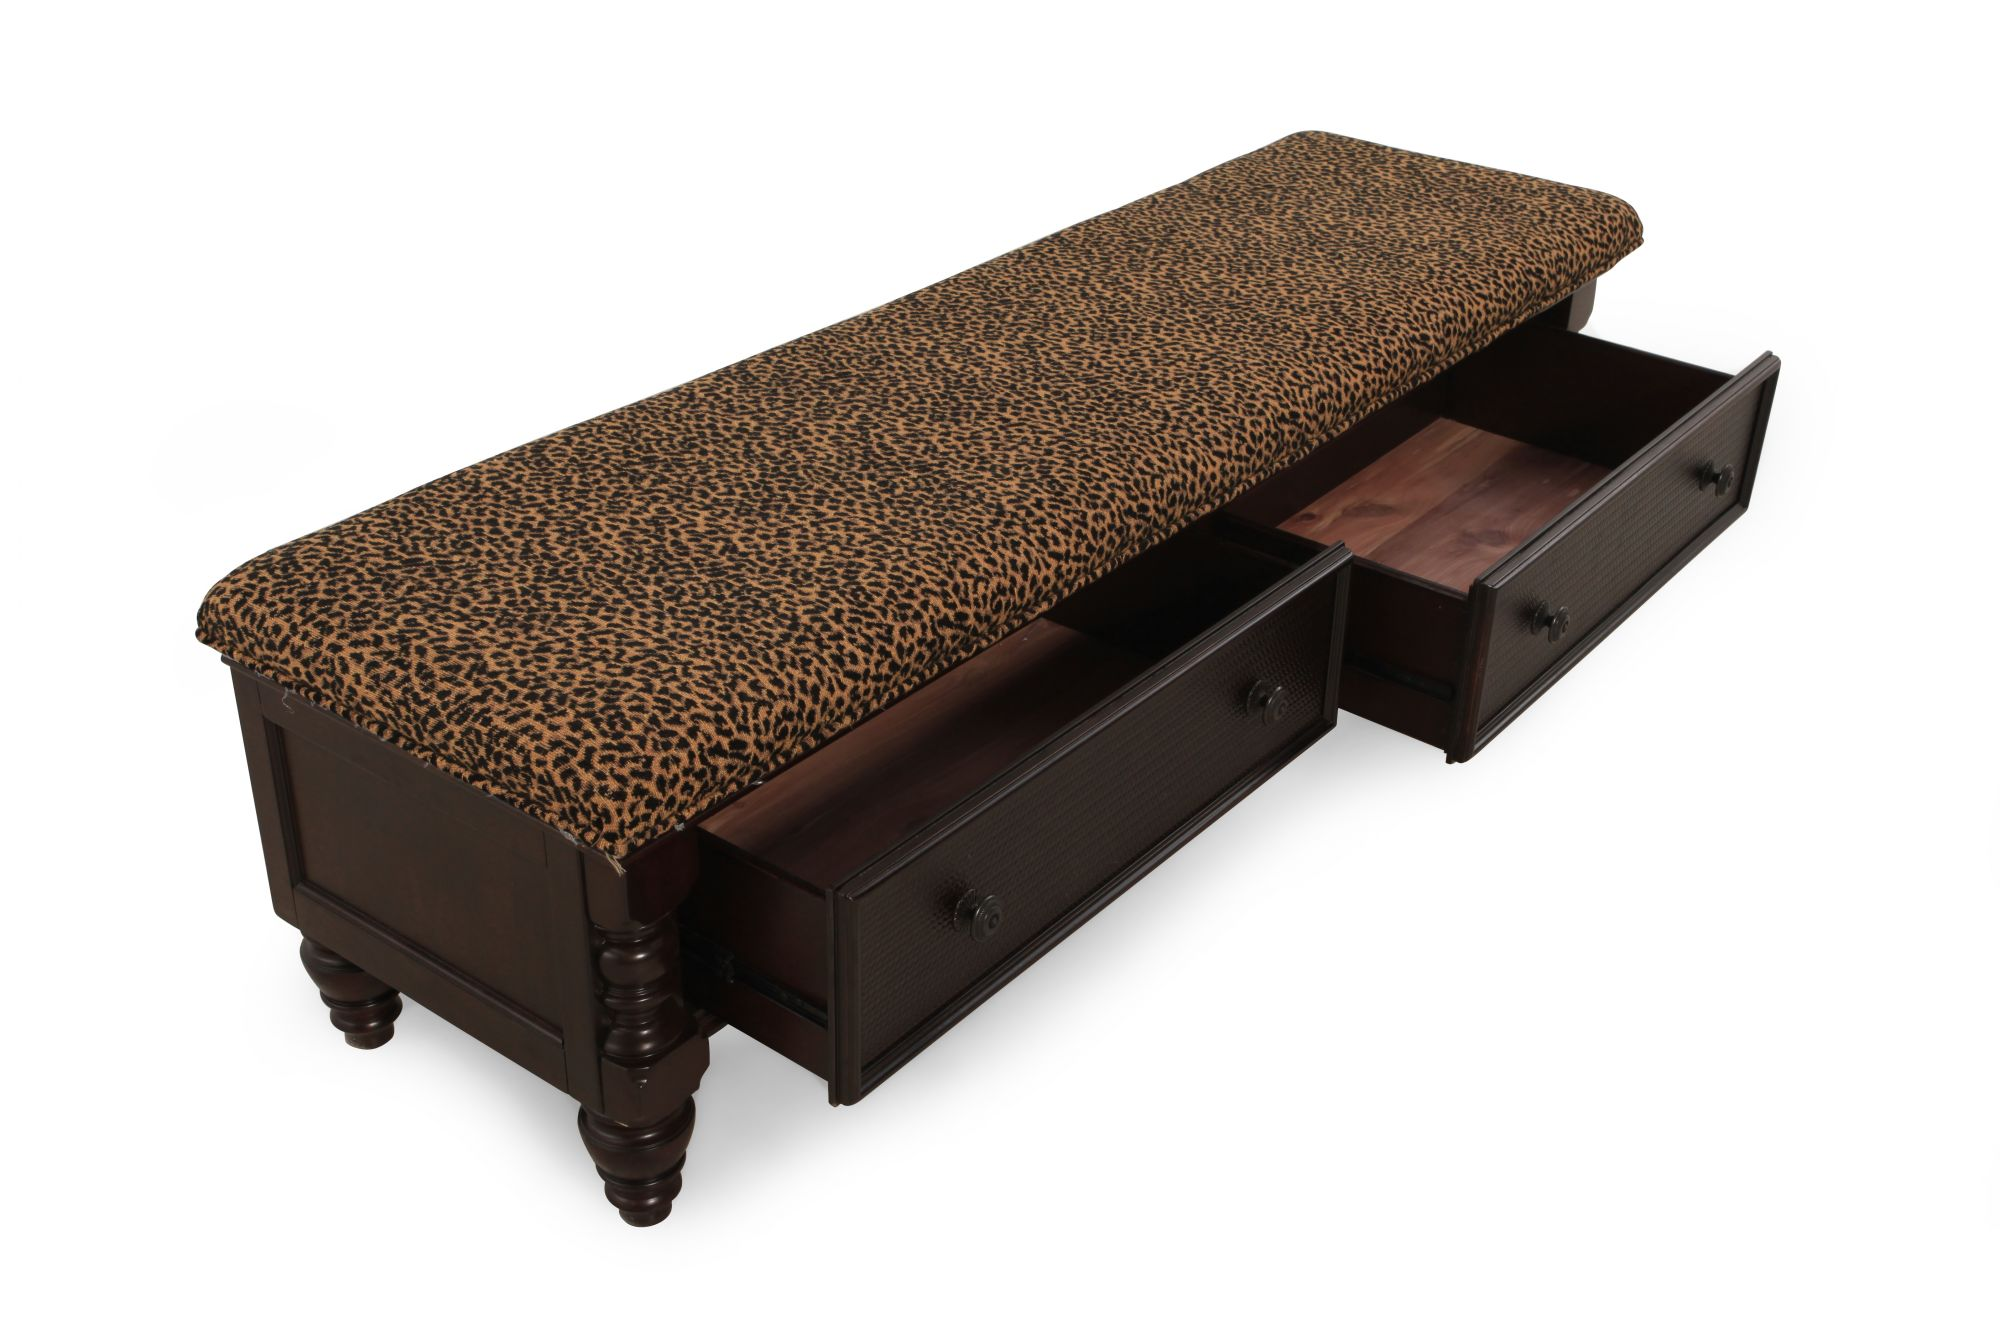 Image gallery leopard bed bench Leopard print bench